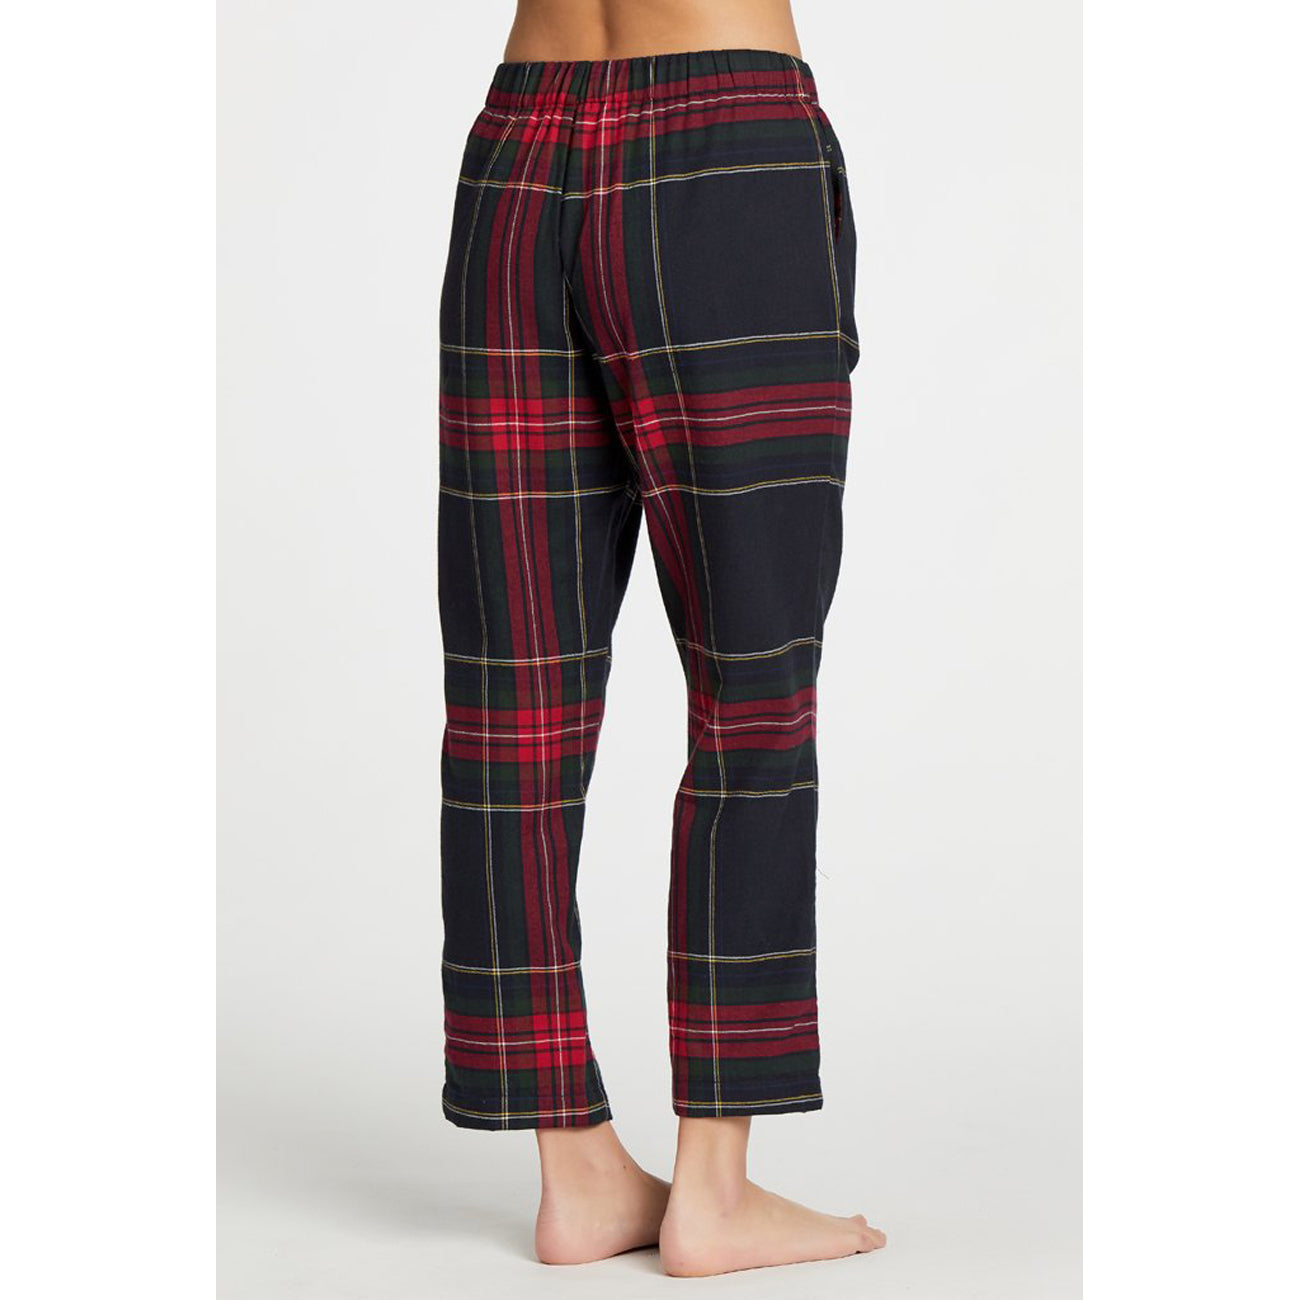 positano bottoms in tartan plaid